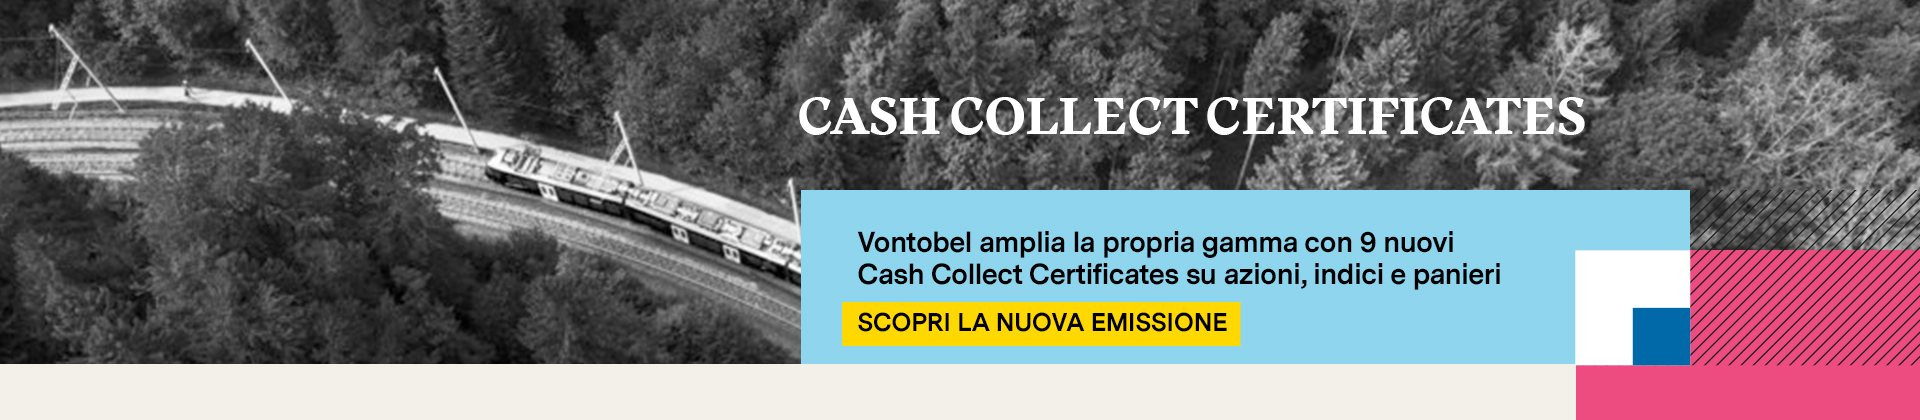 Emissione Cash Collect